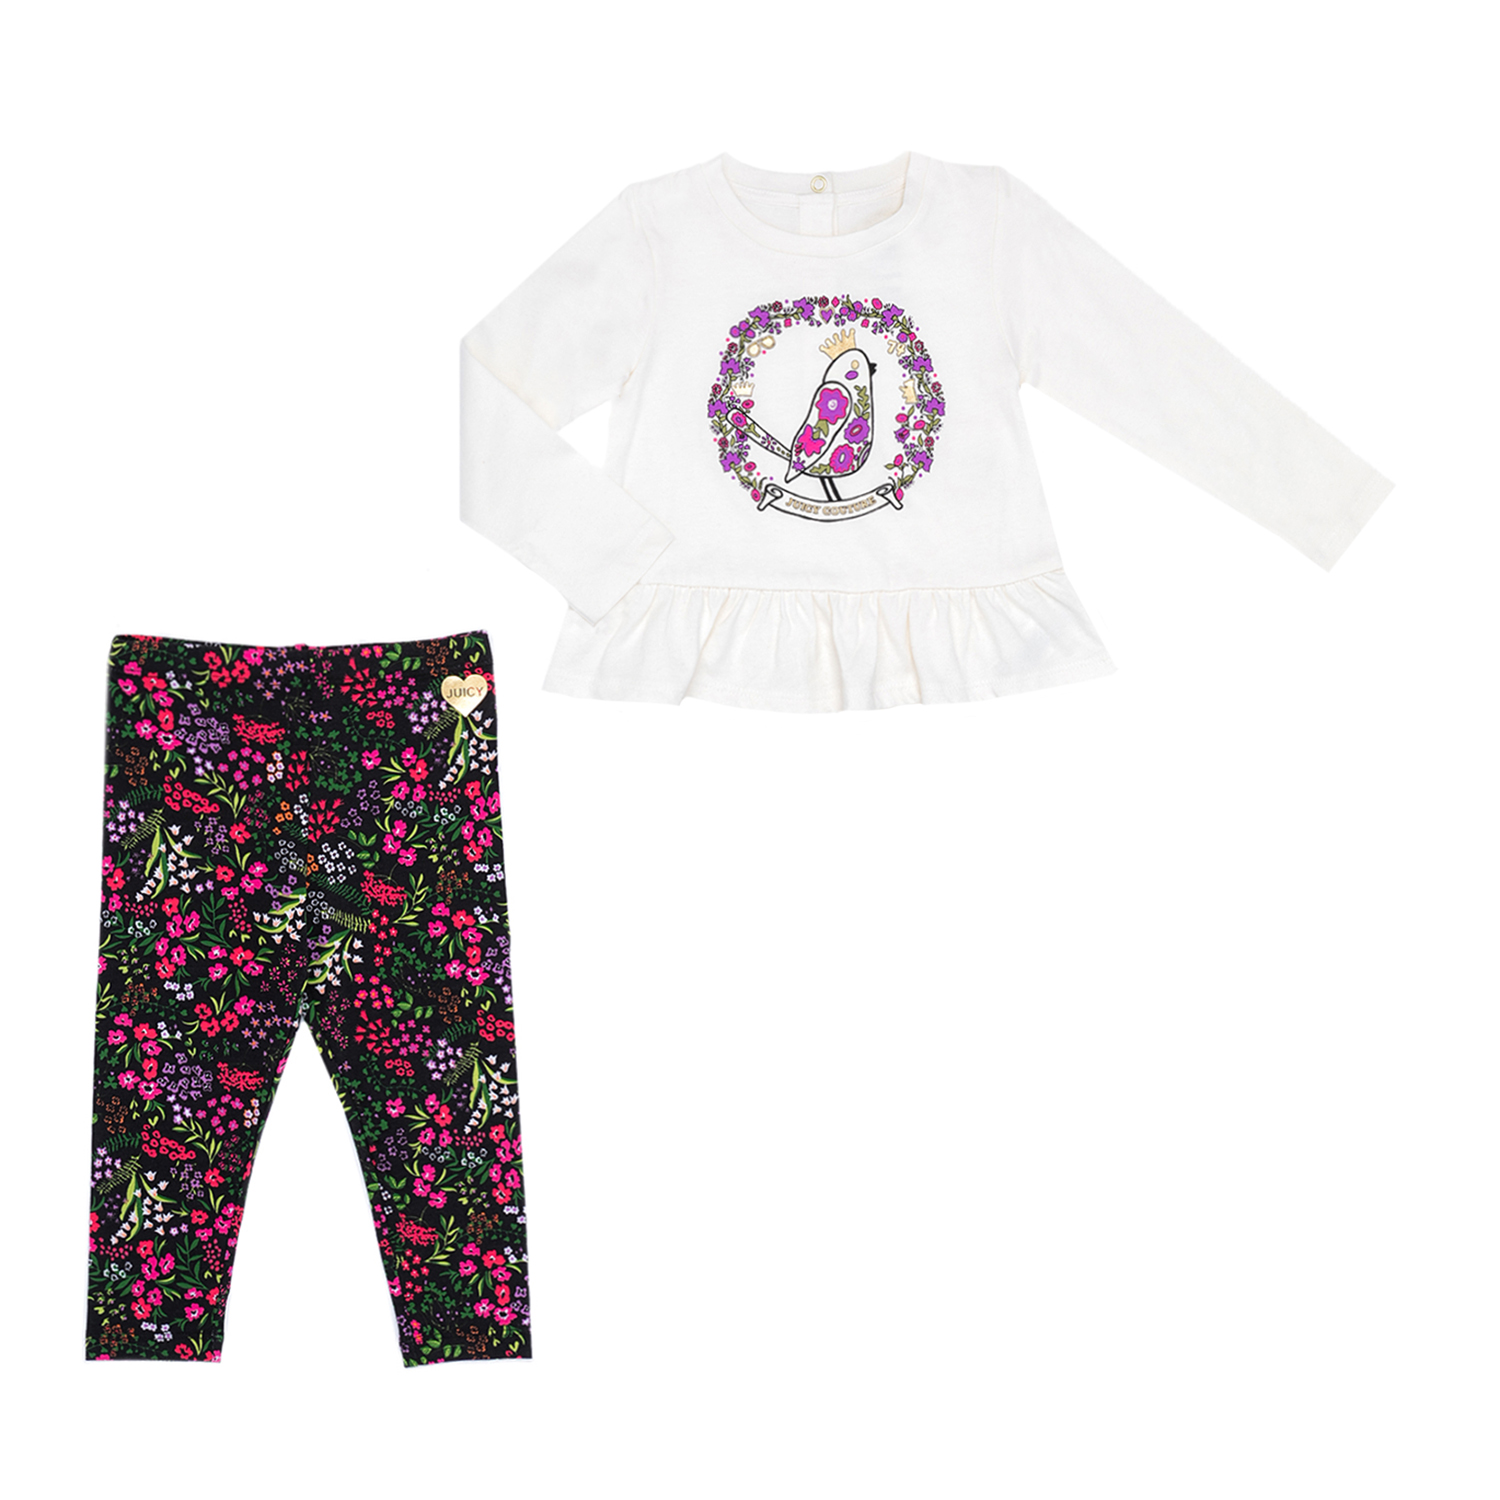 e39b40d70a1a Factoryoutlet JUICY COUTURE KIDS - Βρεφικό σετ JUICY COUTURE KIDS εμπριμέ